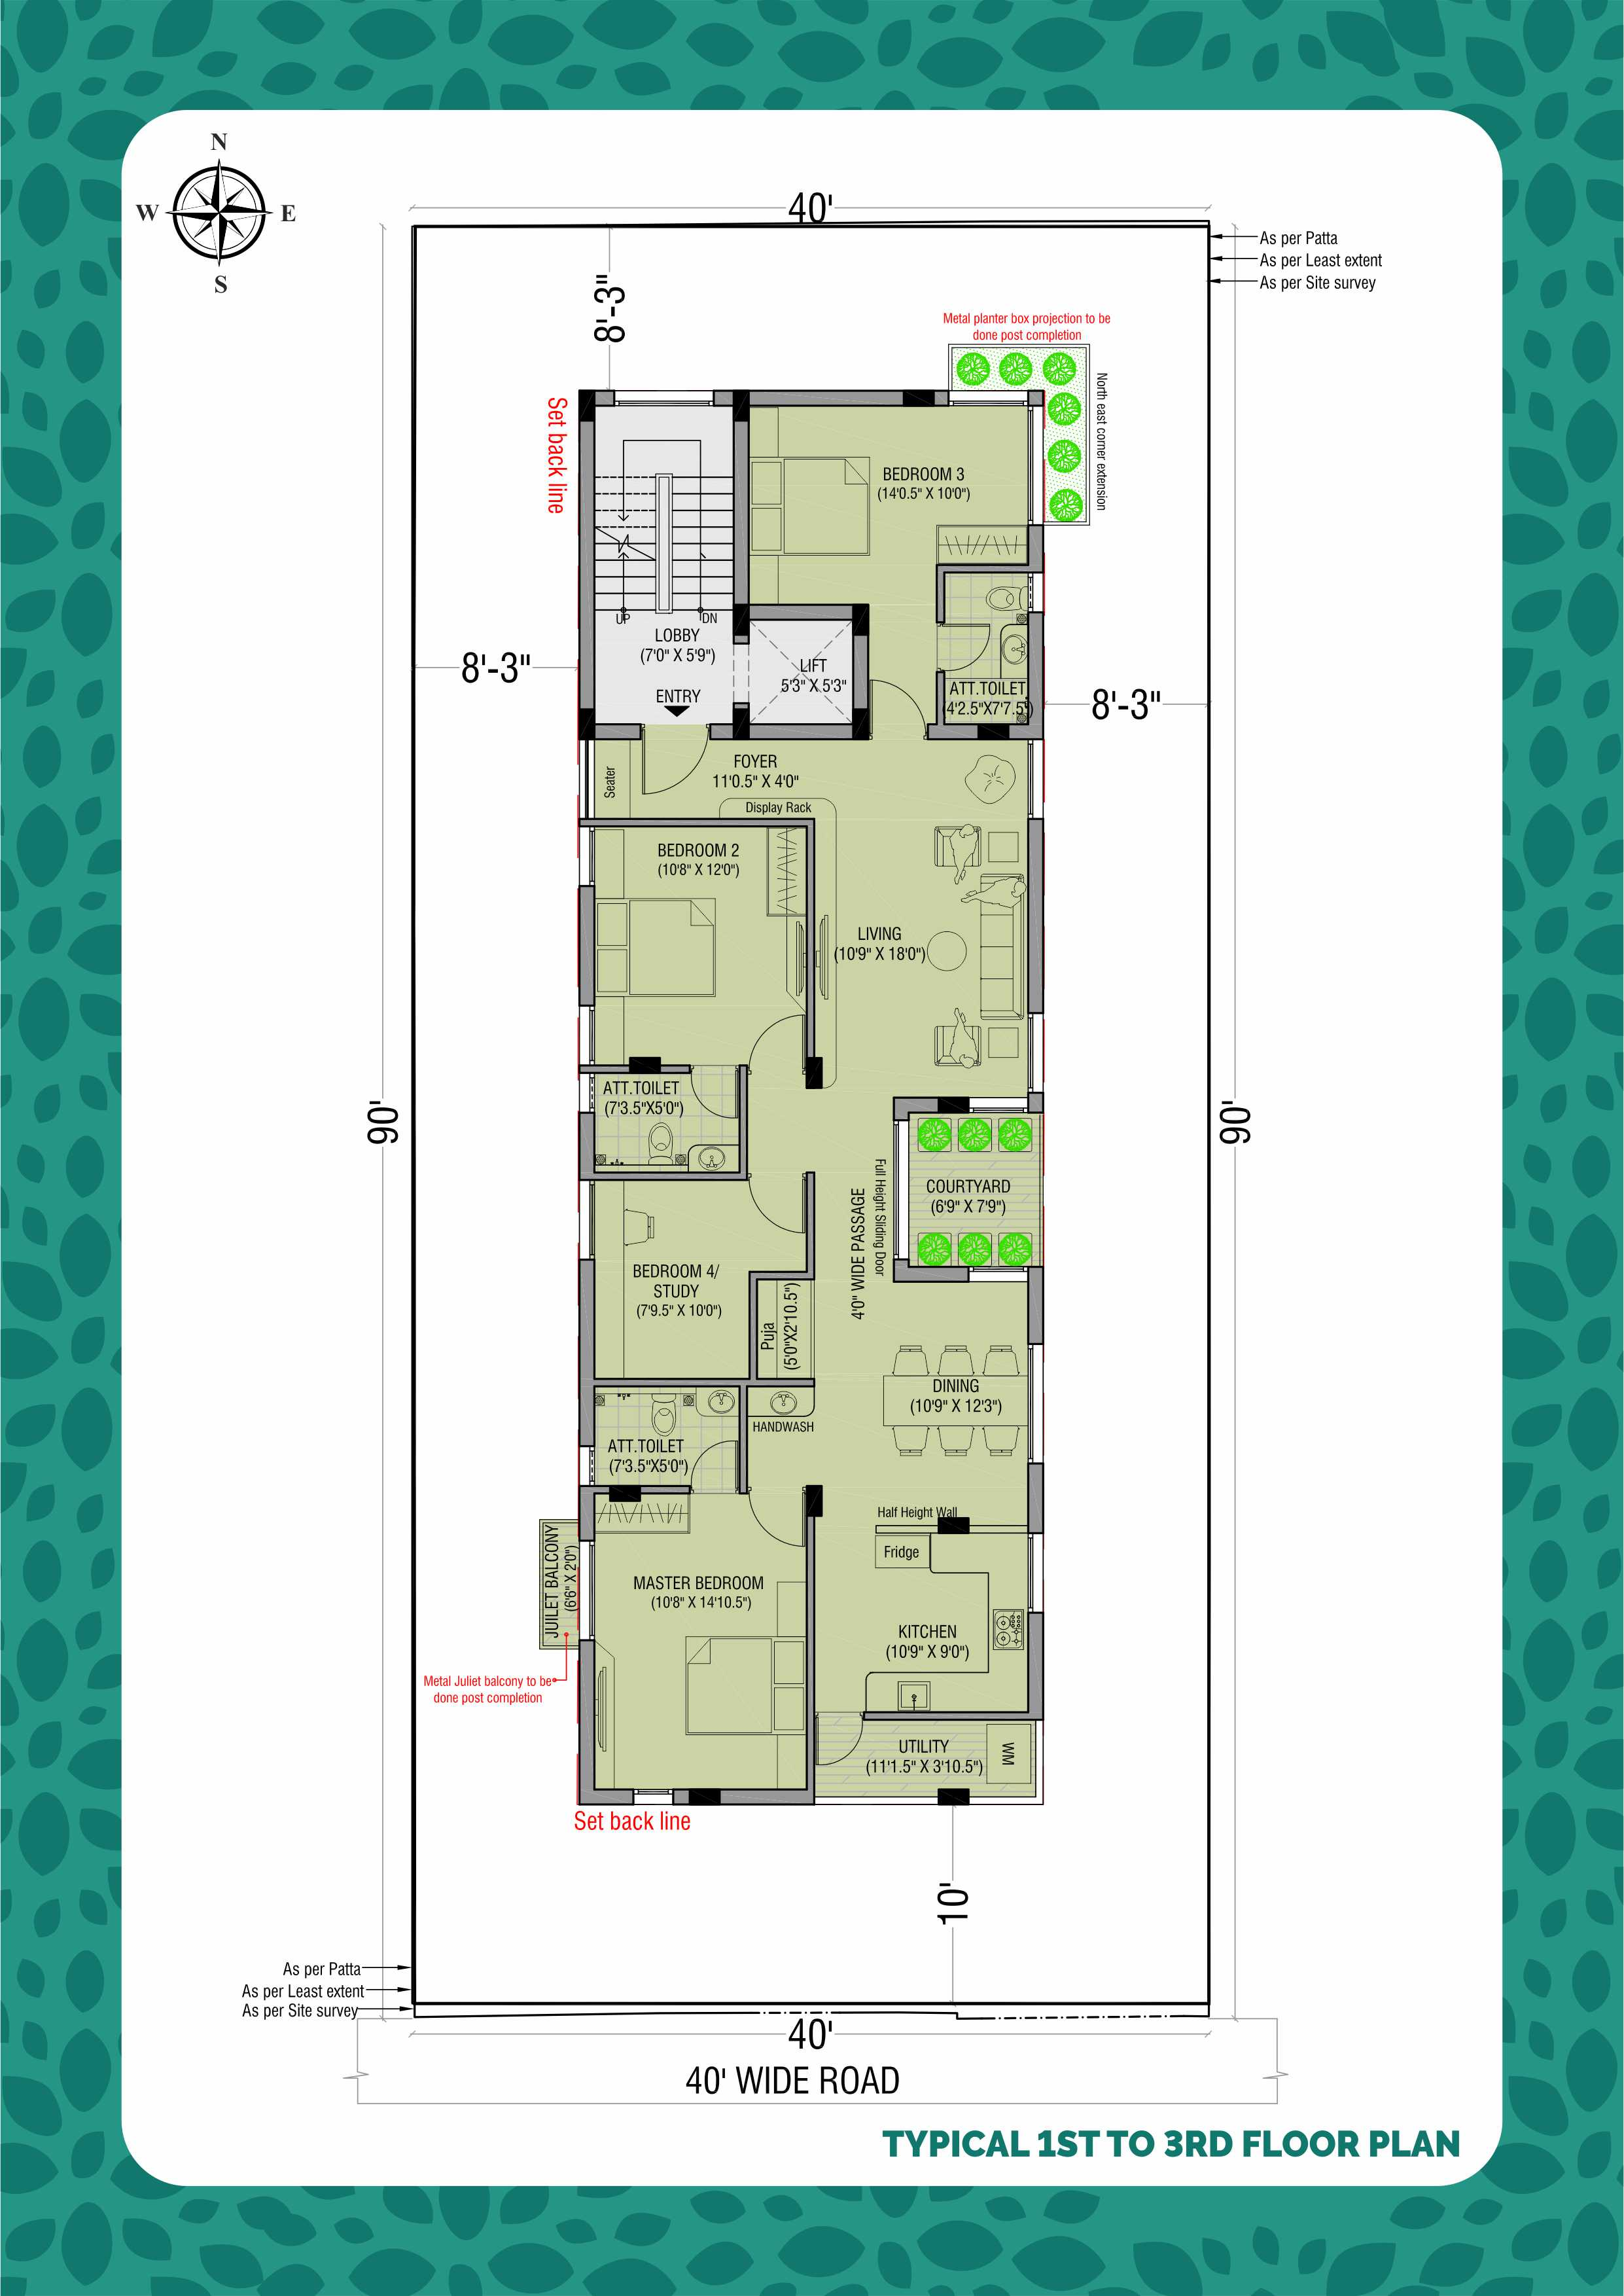 https://www.firmfoundations.in/projects/floorplans/thumbnails/16087158522Amrapali_Typical.jpg